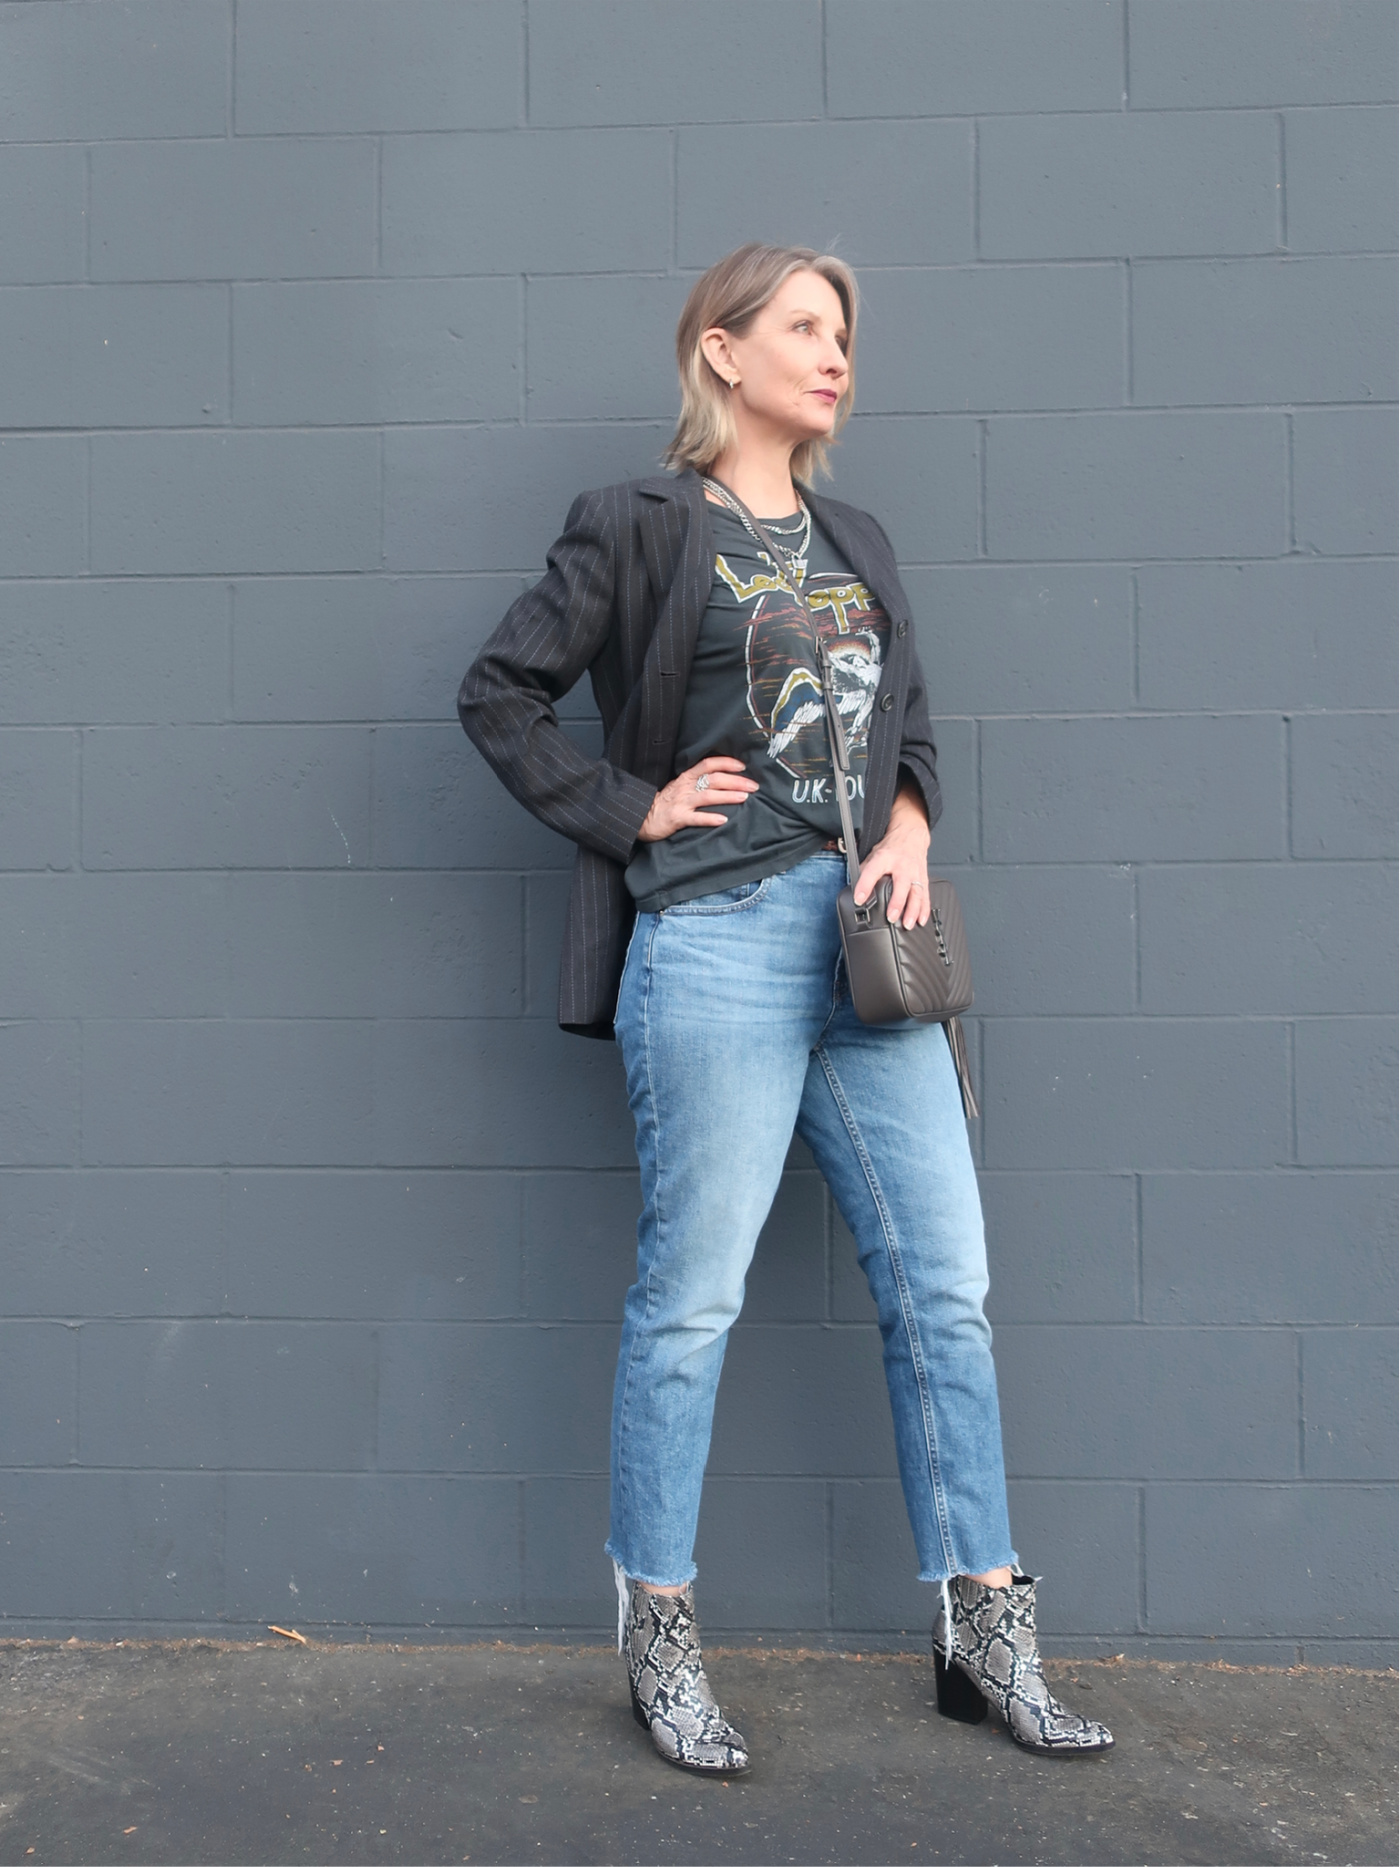 edgy style over 50